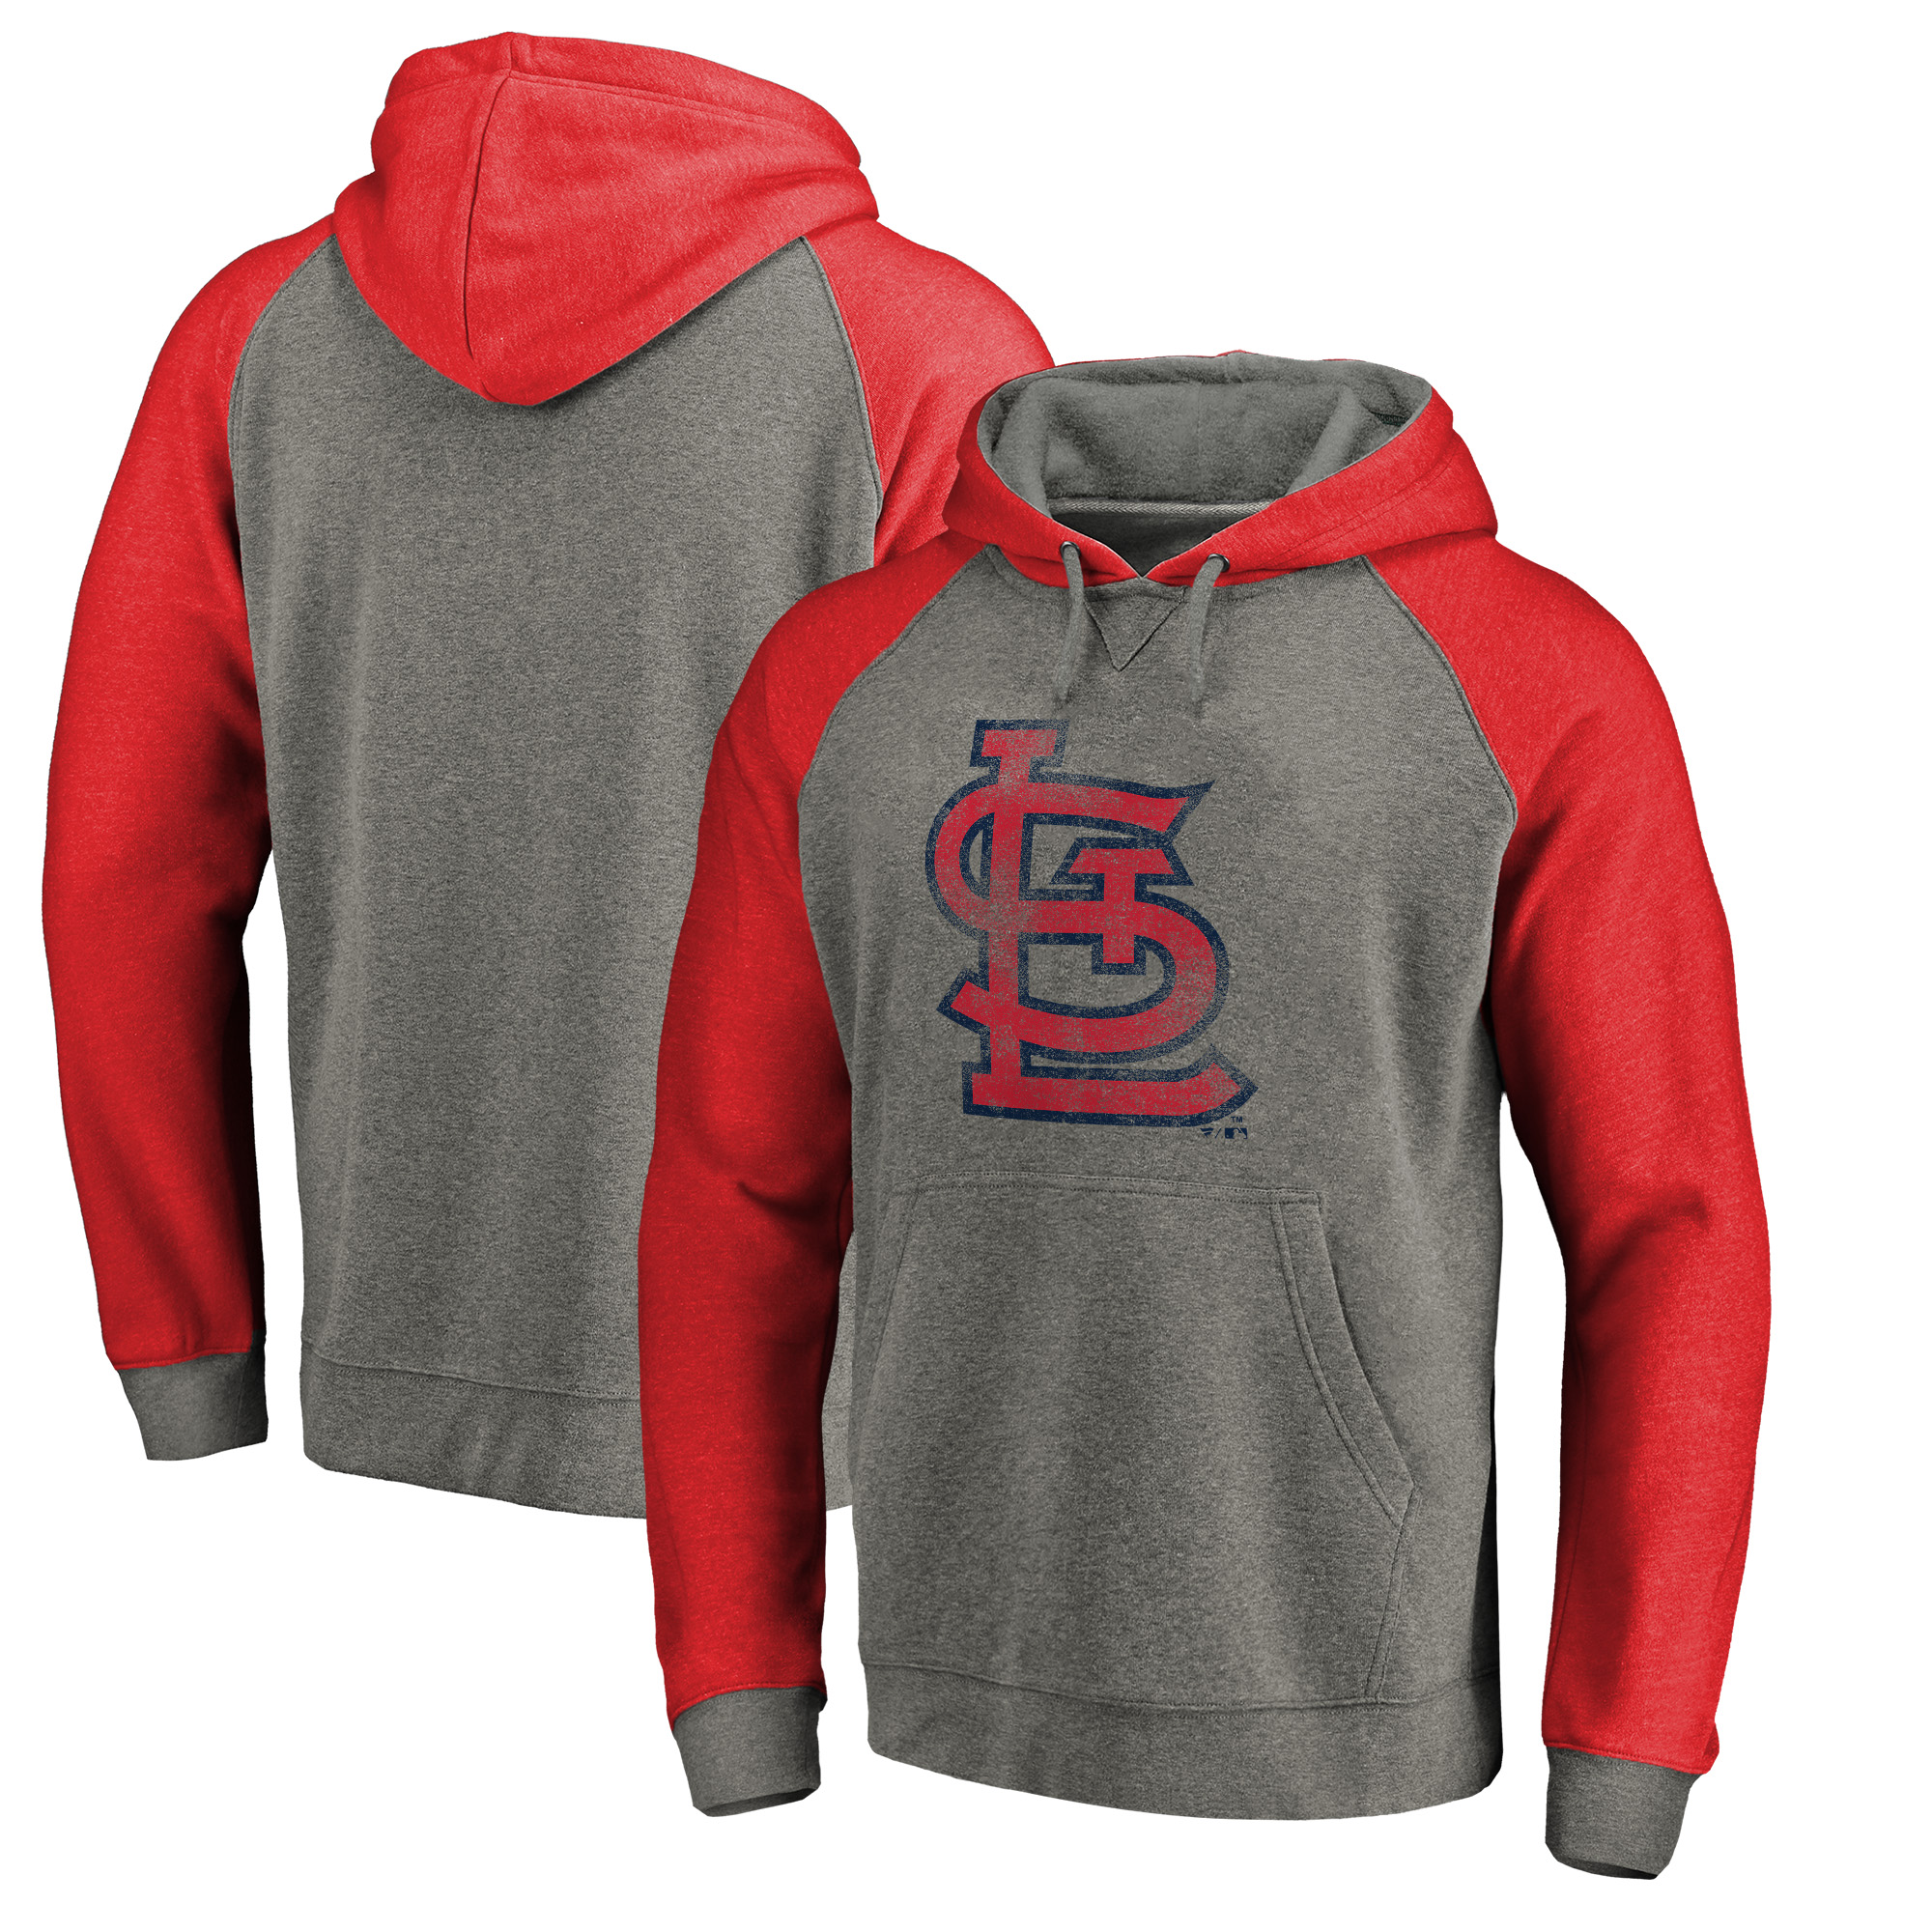 St. Louis Cardinals Fanatics Branded Distressed Team Logo Tri-Blend Big & Tall Raglan Pullover Hoodie - Gray/Red